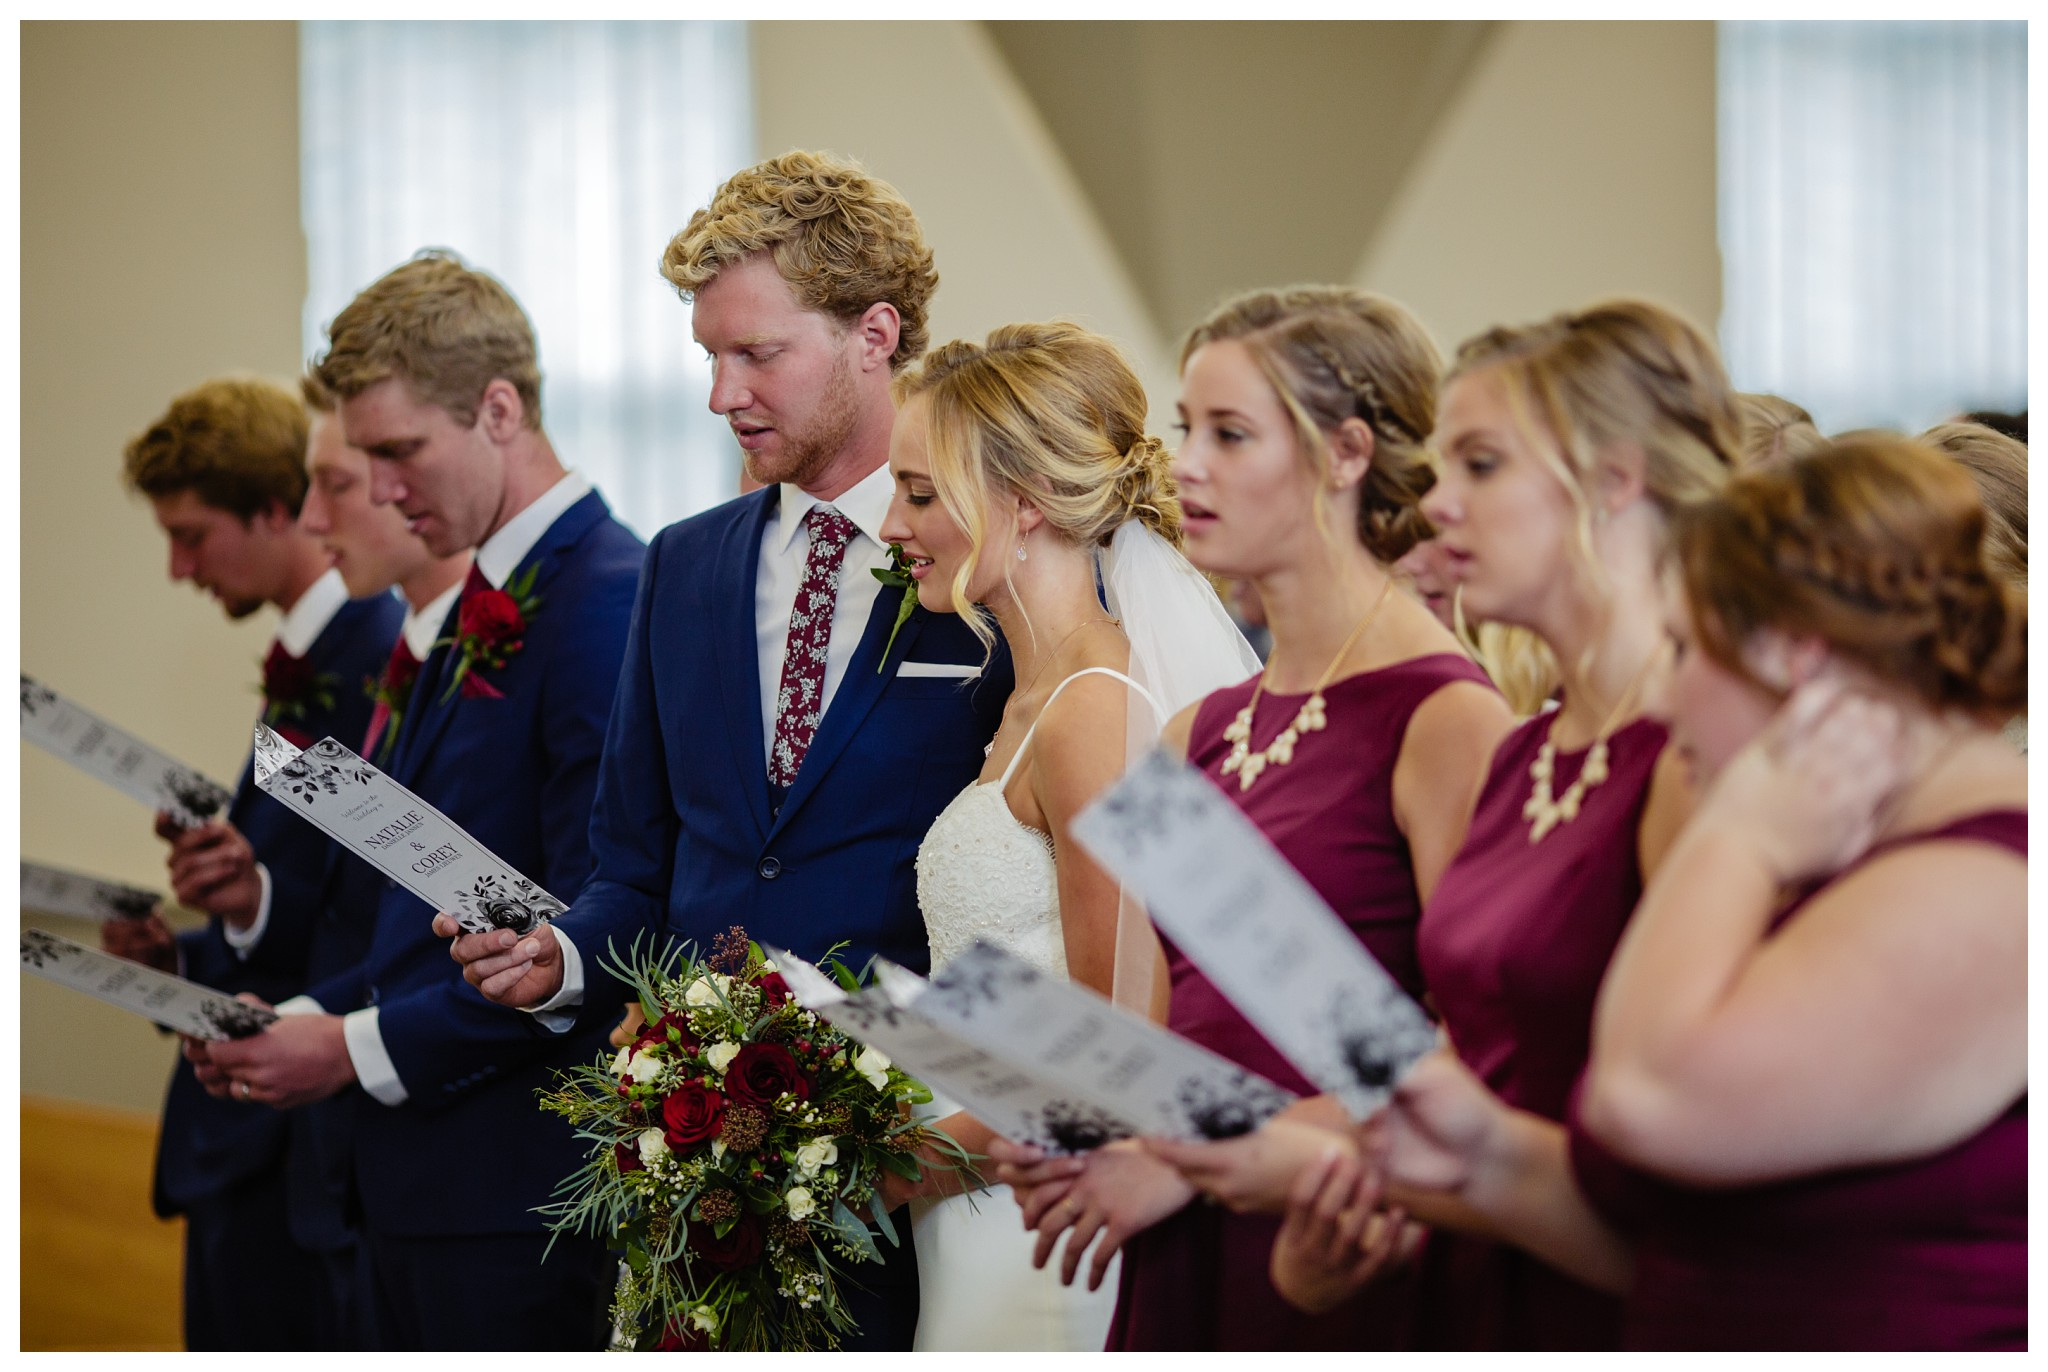 Campbell Valley Park Wedding Photographer Canadian Reformed Church Willoughby Heights Christian Fall Burgundy Navy Roses Wedding_0032.jpg